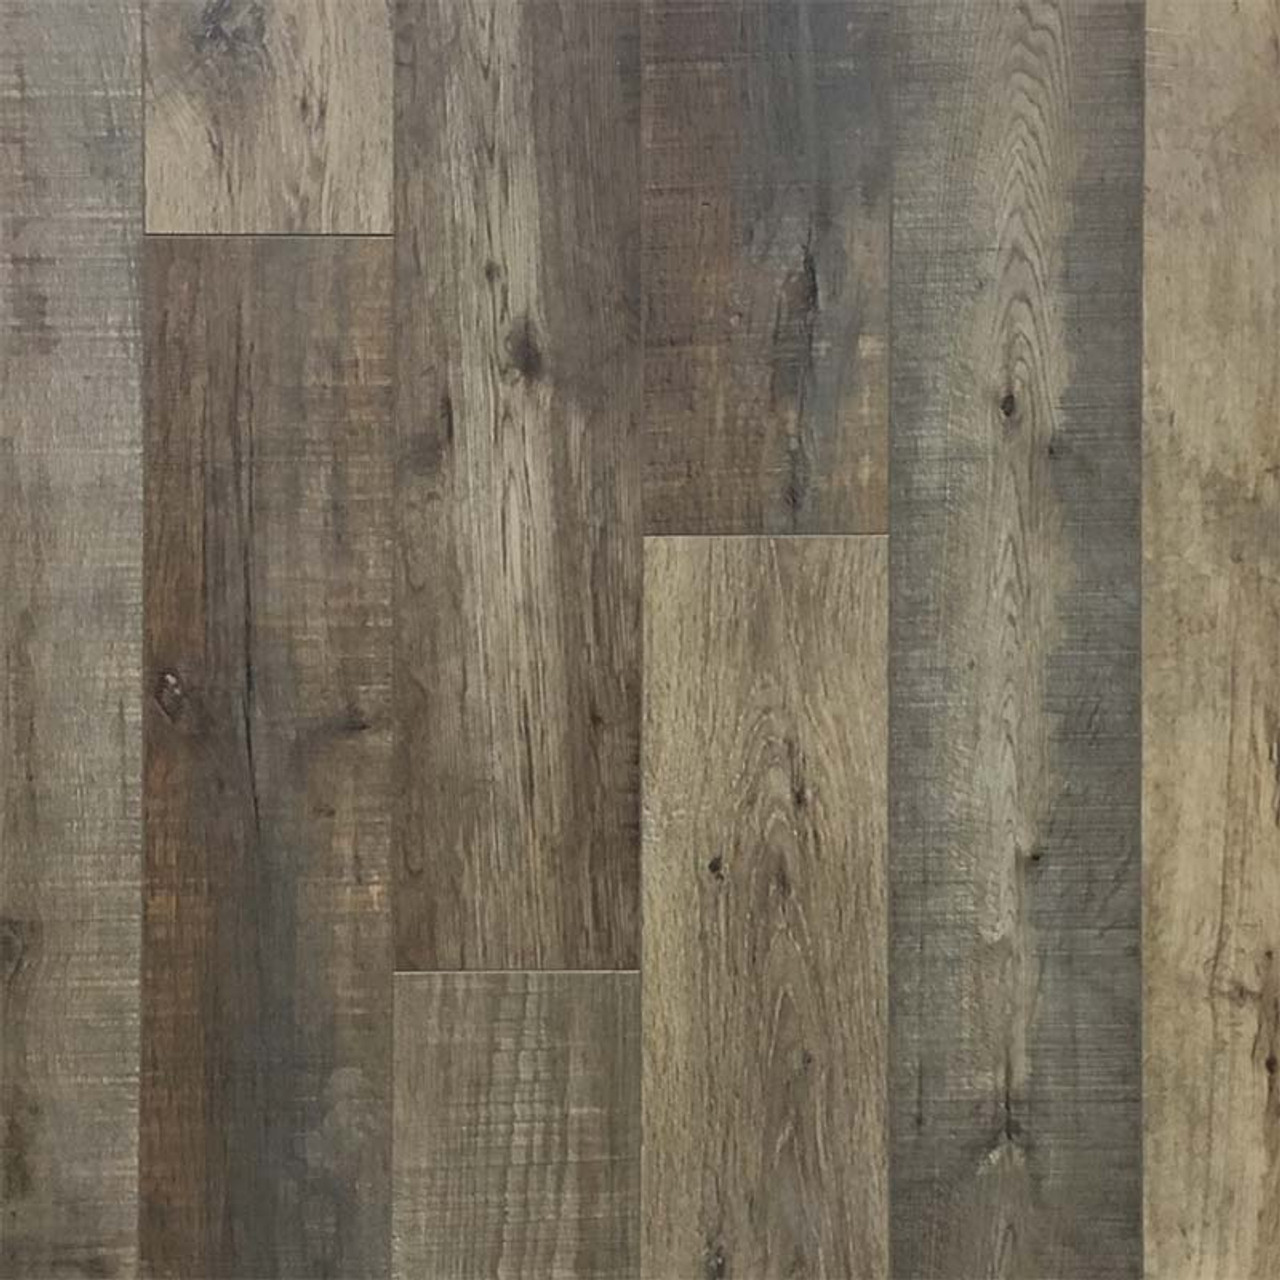 12MM Russet Pine Laminate Flooring | Attached Underpad | 11.63 Sq.Ft. Per Box | Sold by the Box